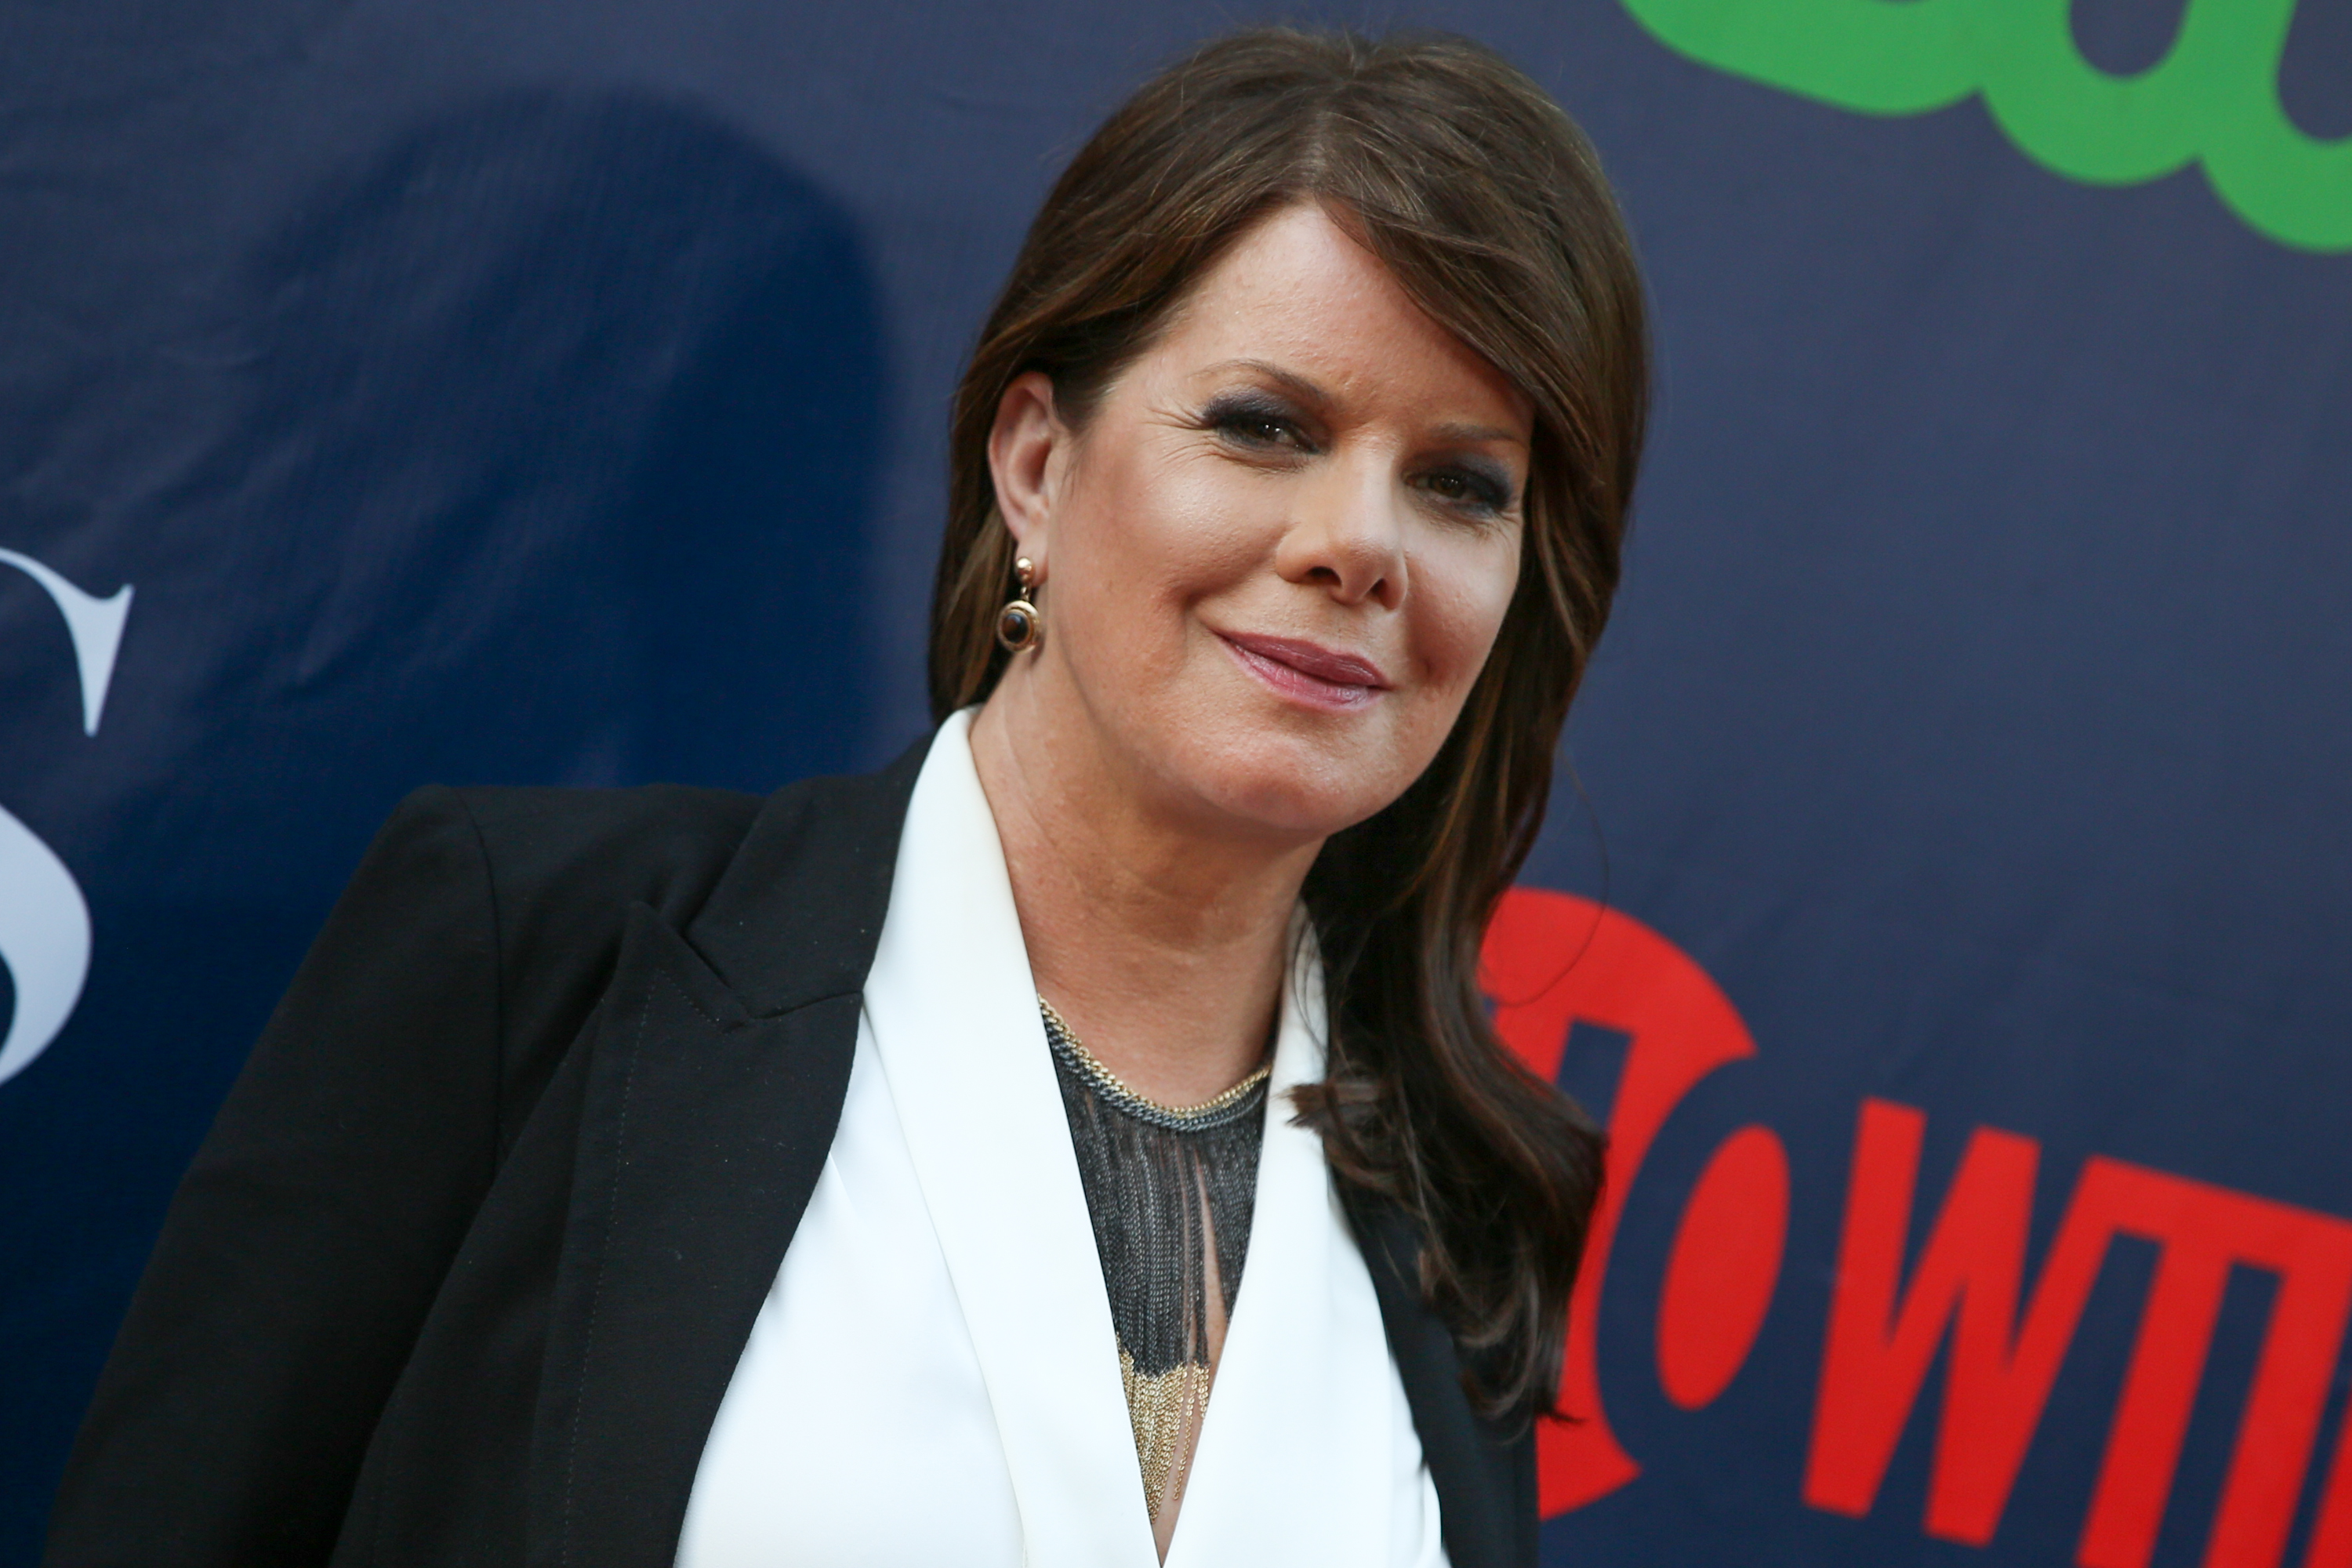 Marcia Gay Harden On The Challenge Of Bloody Quot Code Black